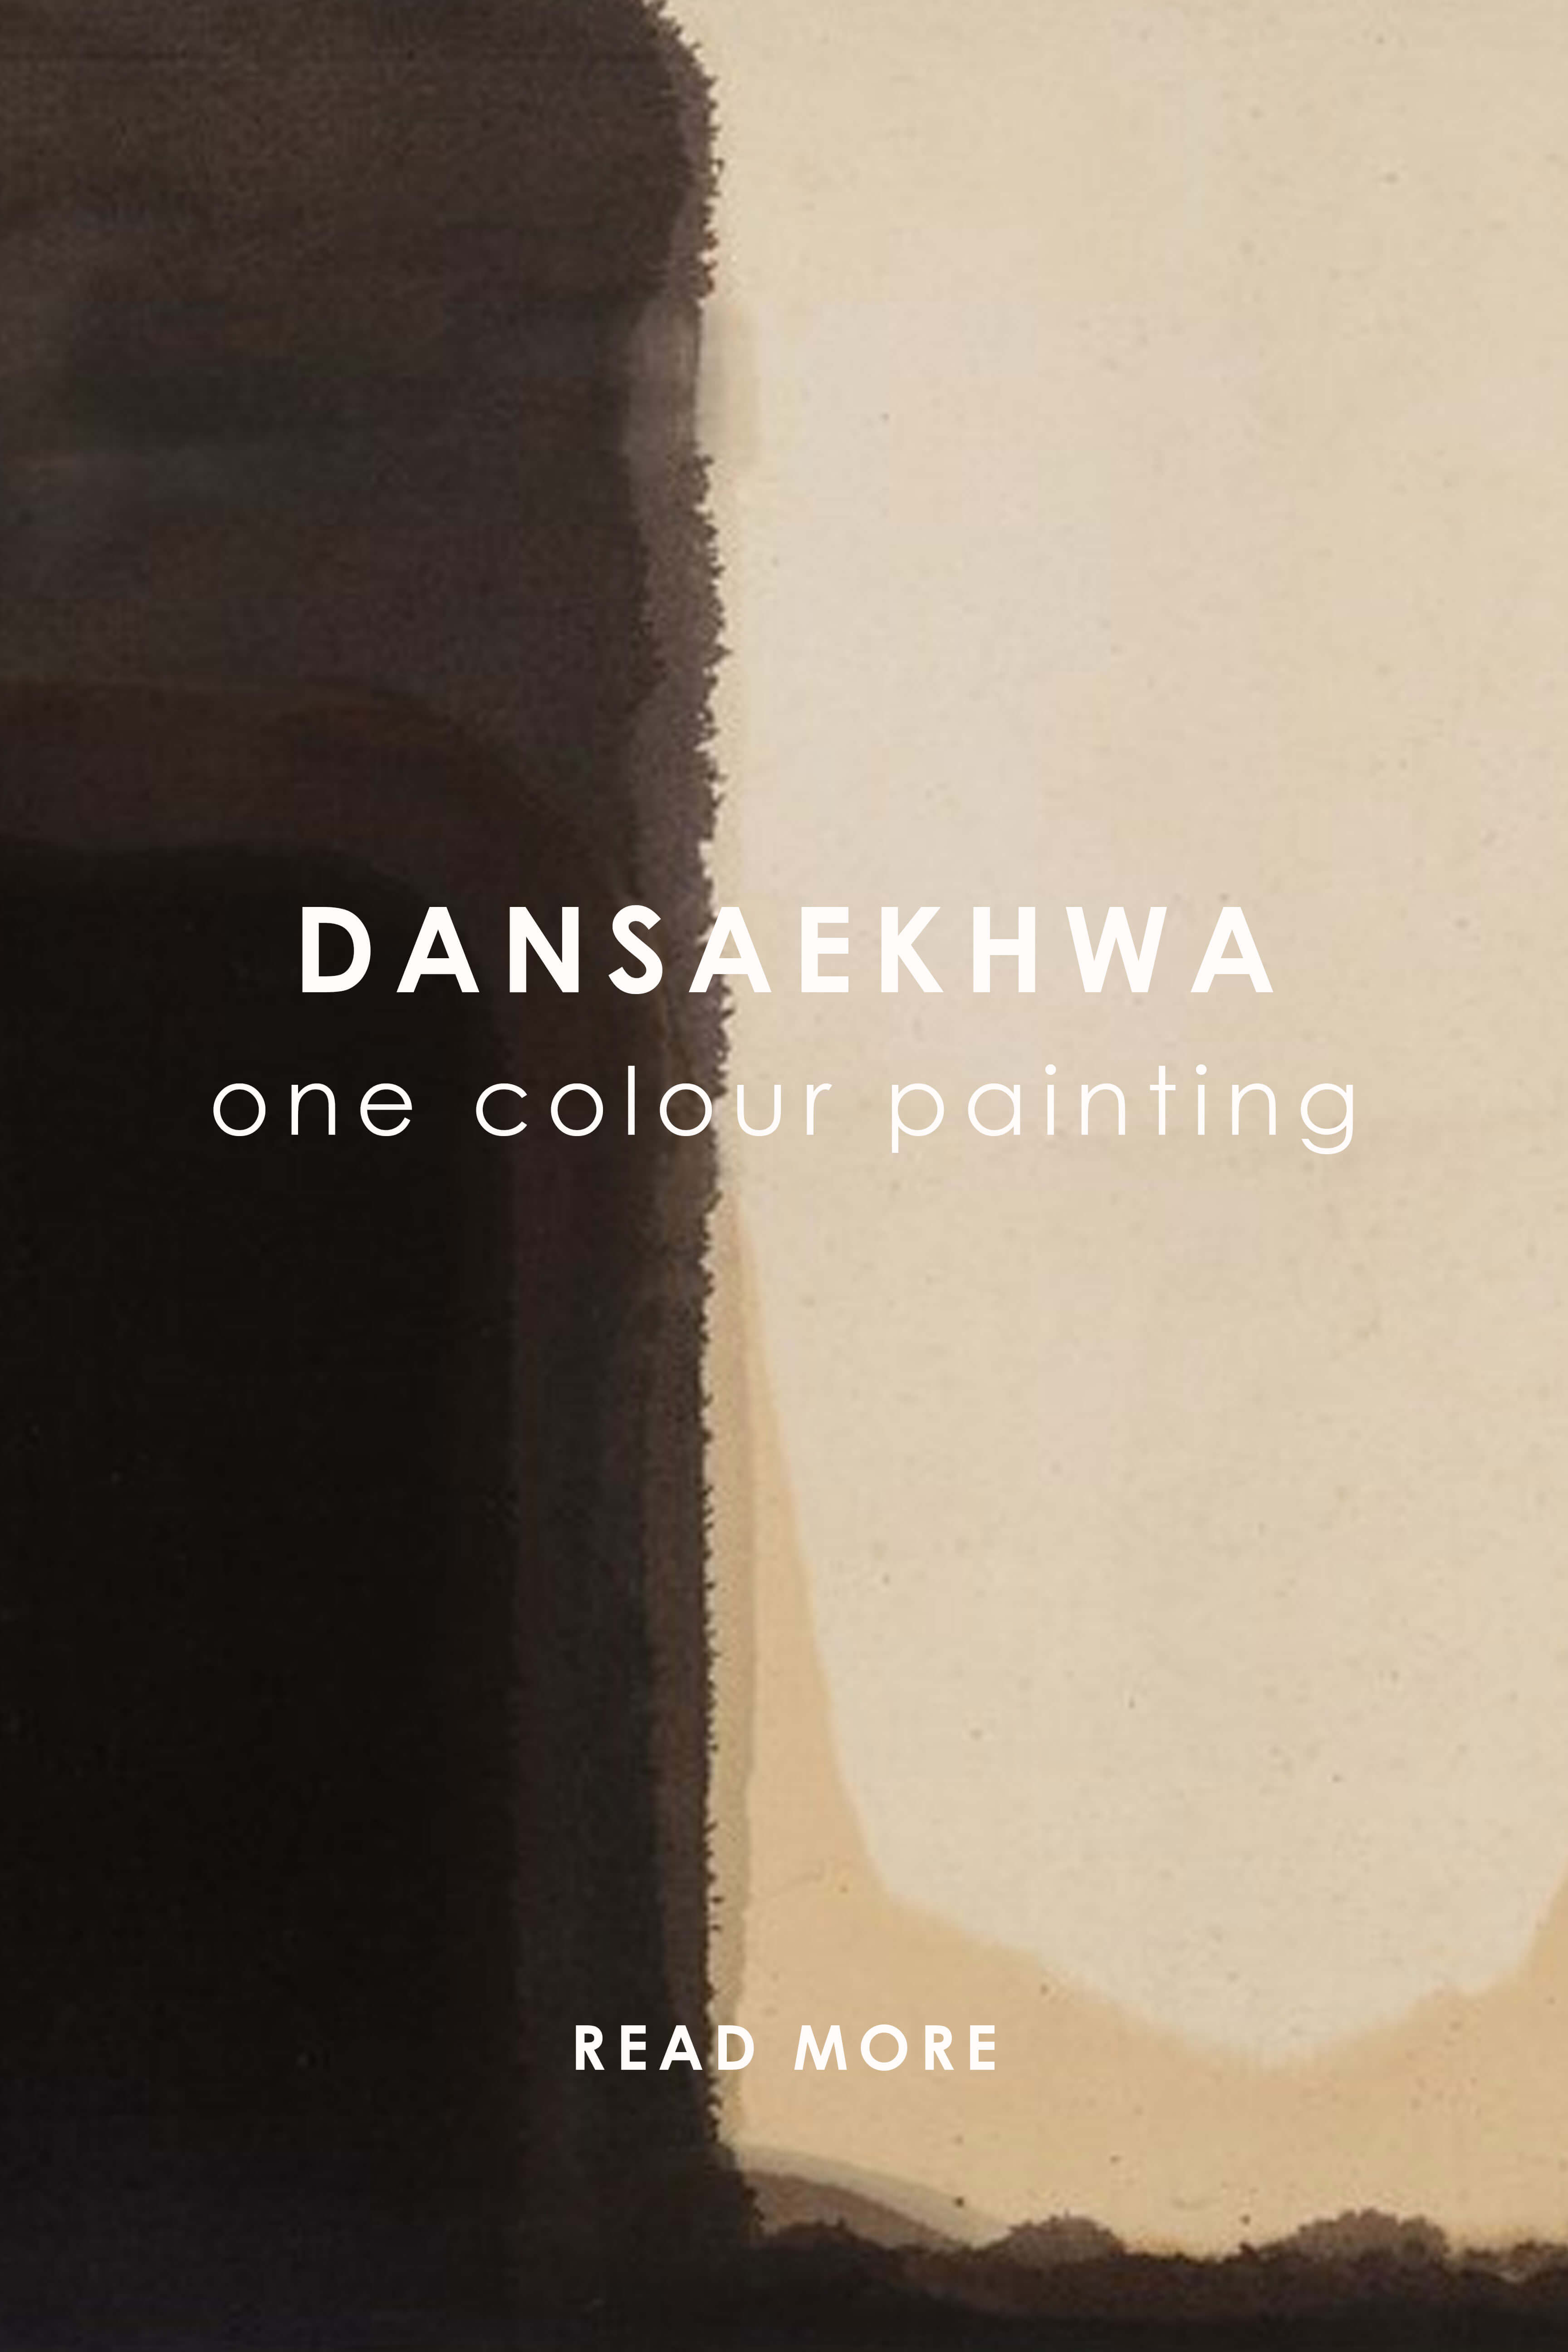 Dansaekhw-a: One Colour Painting